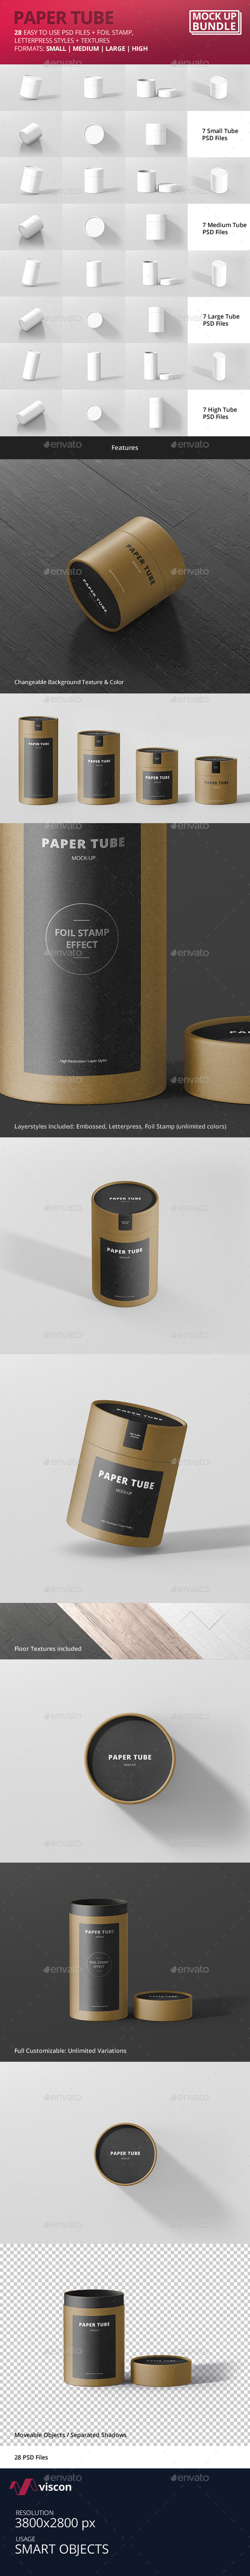 Paper Tube Packaging Mock-Up Bundle